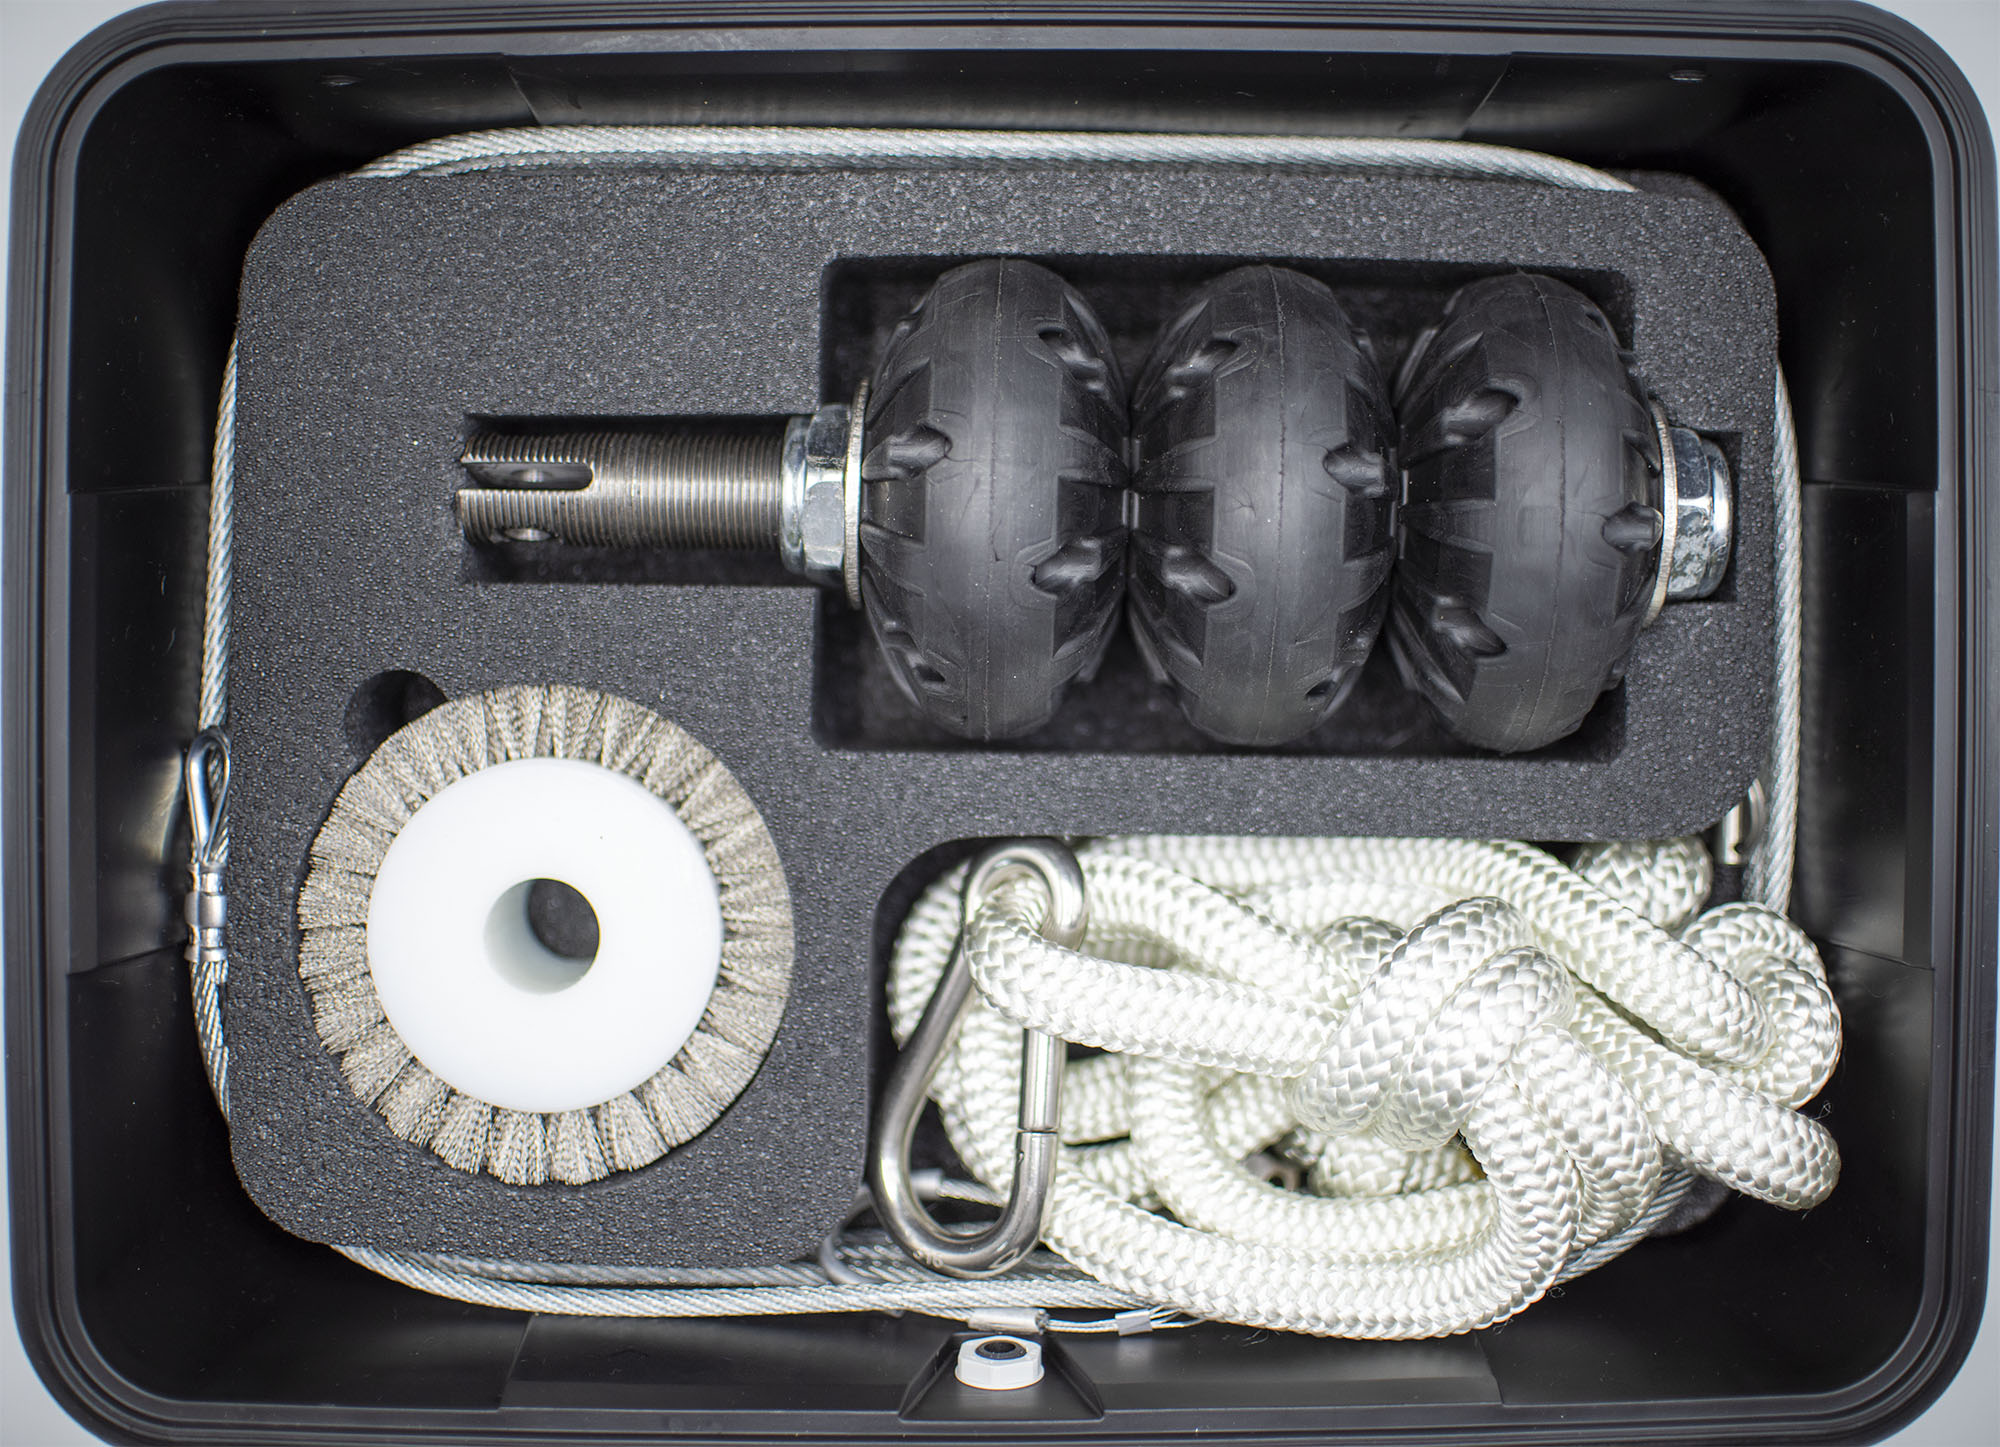 105mm Big Bore Cleaning Kit